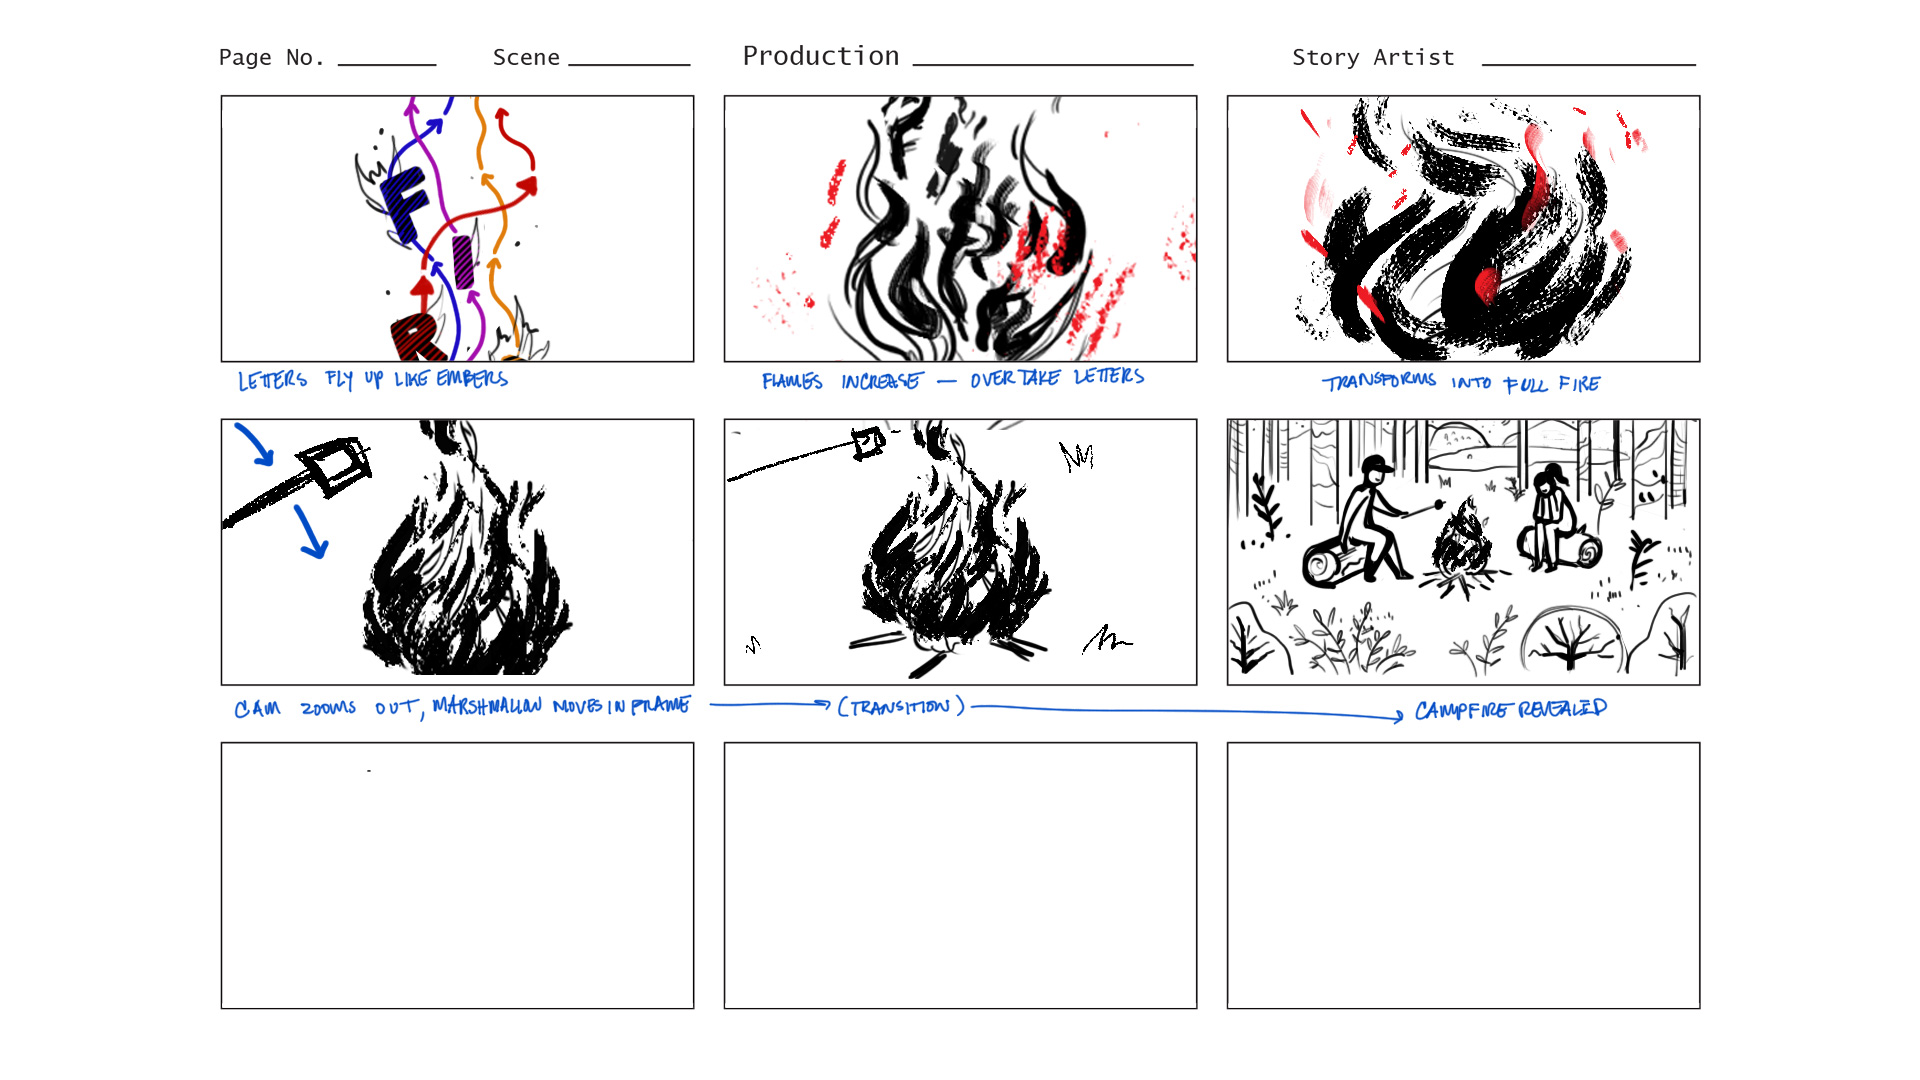 Quick storyboard for the animation.